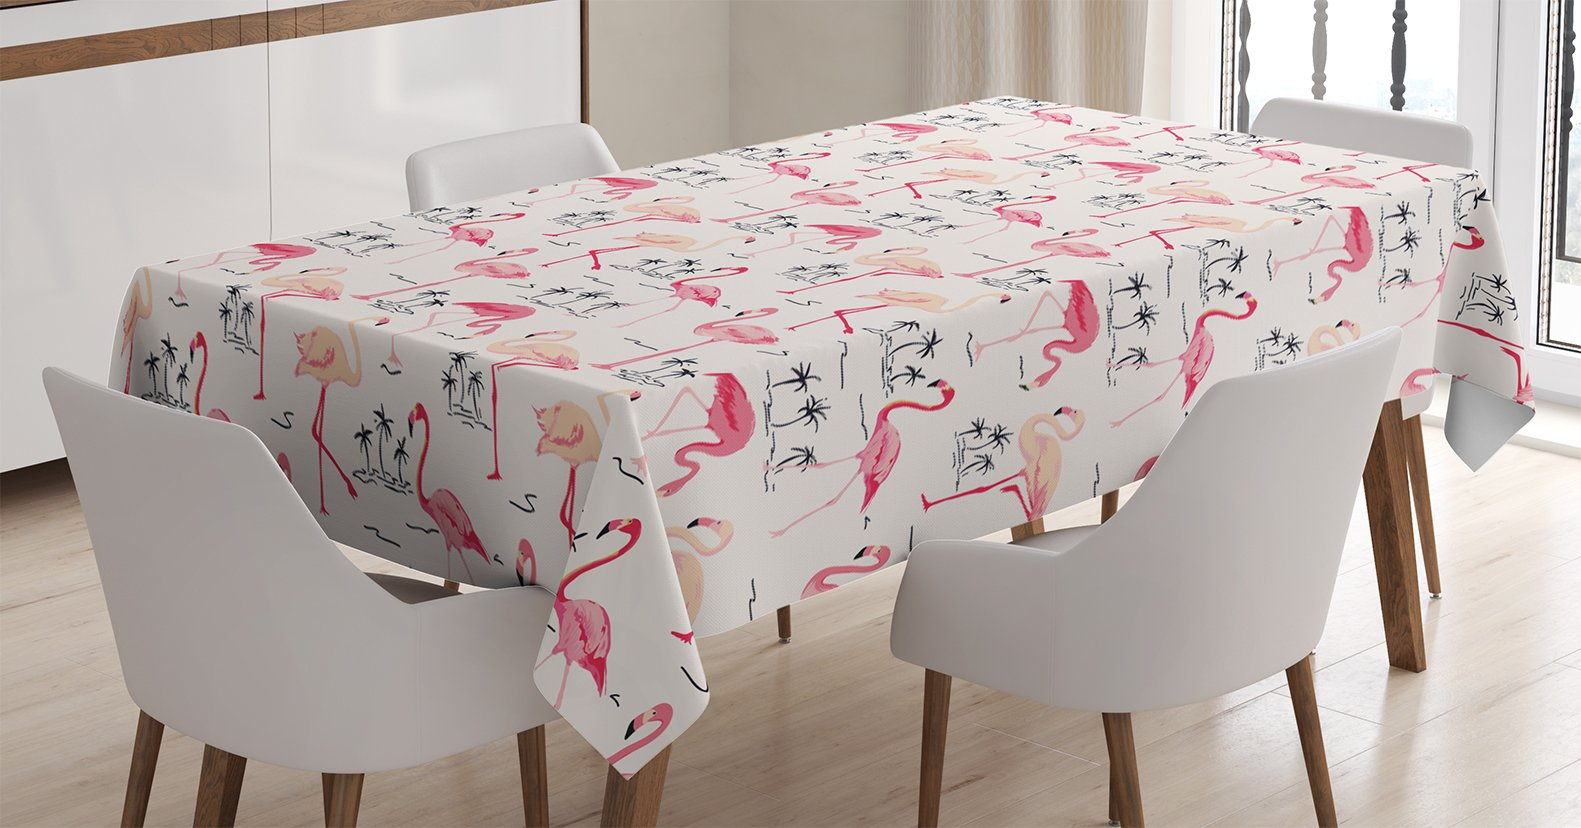 Ambesonne Flamingo Tablecloth, Flamingos in Vintage Style Illustration Love and Romantic Animals Artwork Print, Dining Room Kitchen Rectangular Table Cover, 60 W X 84 L inches, Beige Pink